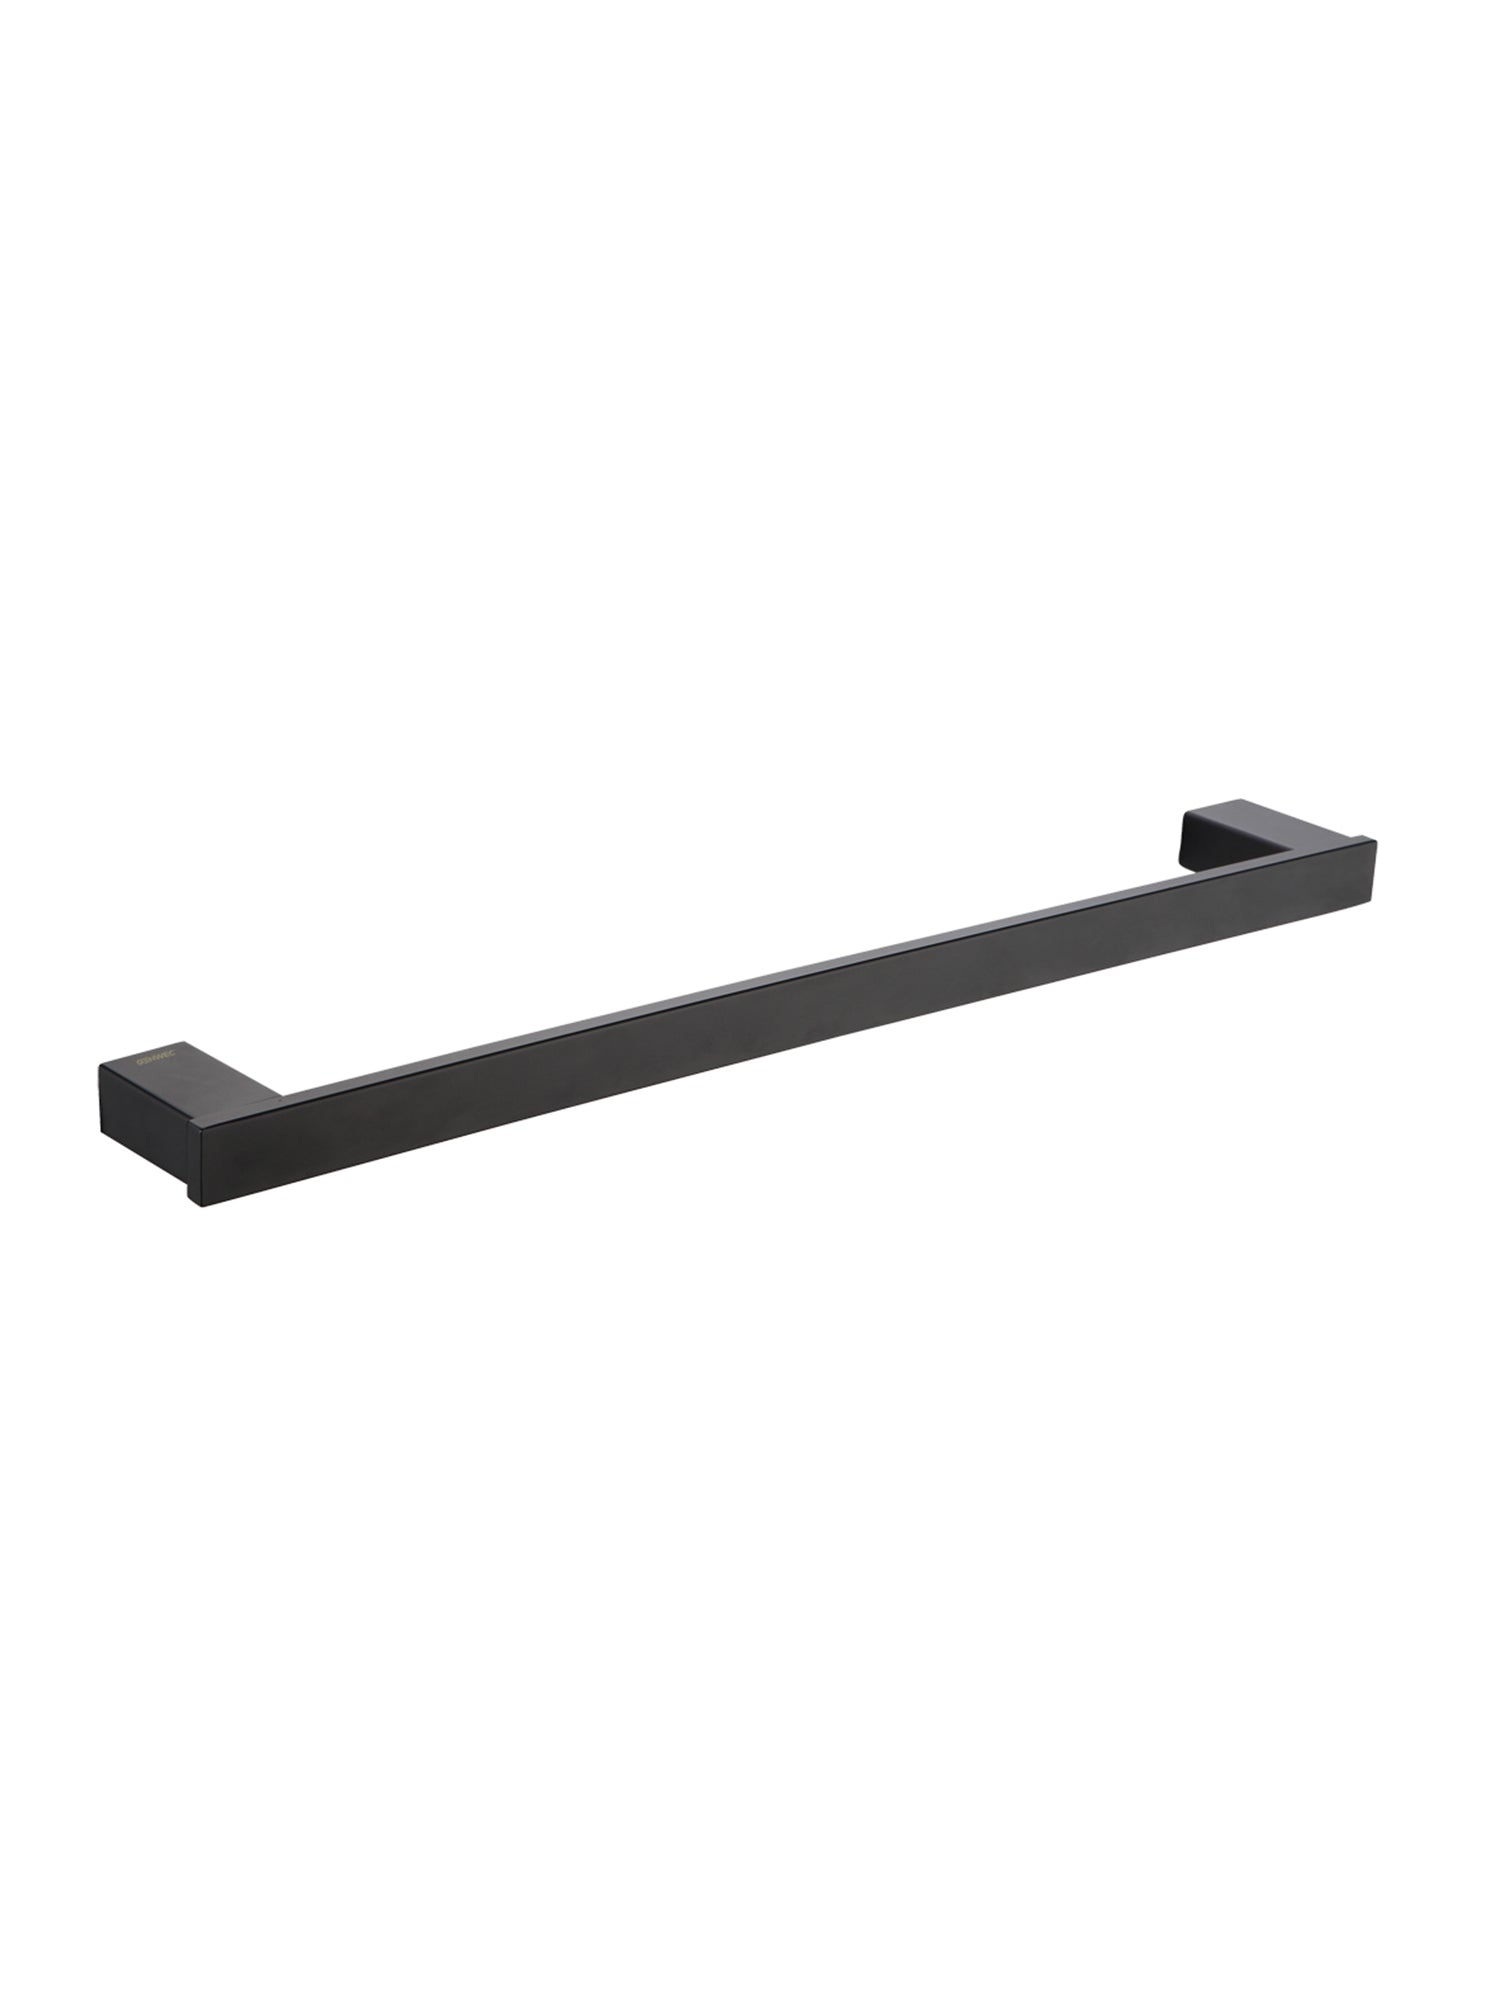 Pompei GW05 64 04 03 Black Towel Rail - Stainless Steel